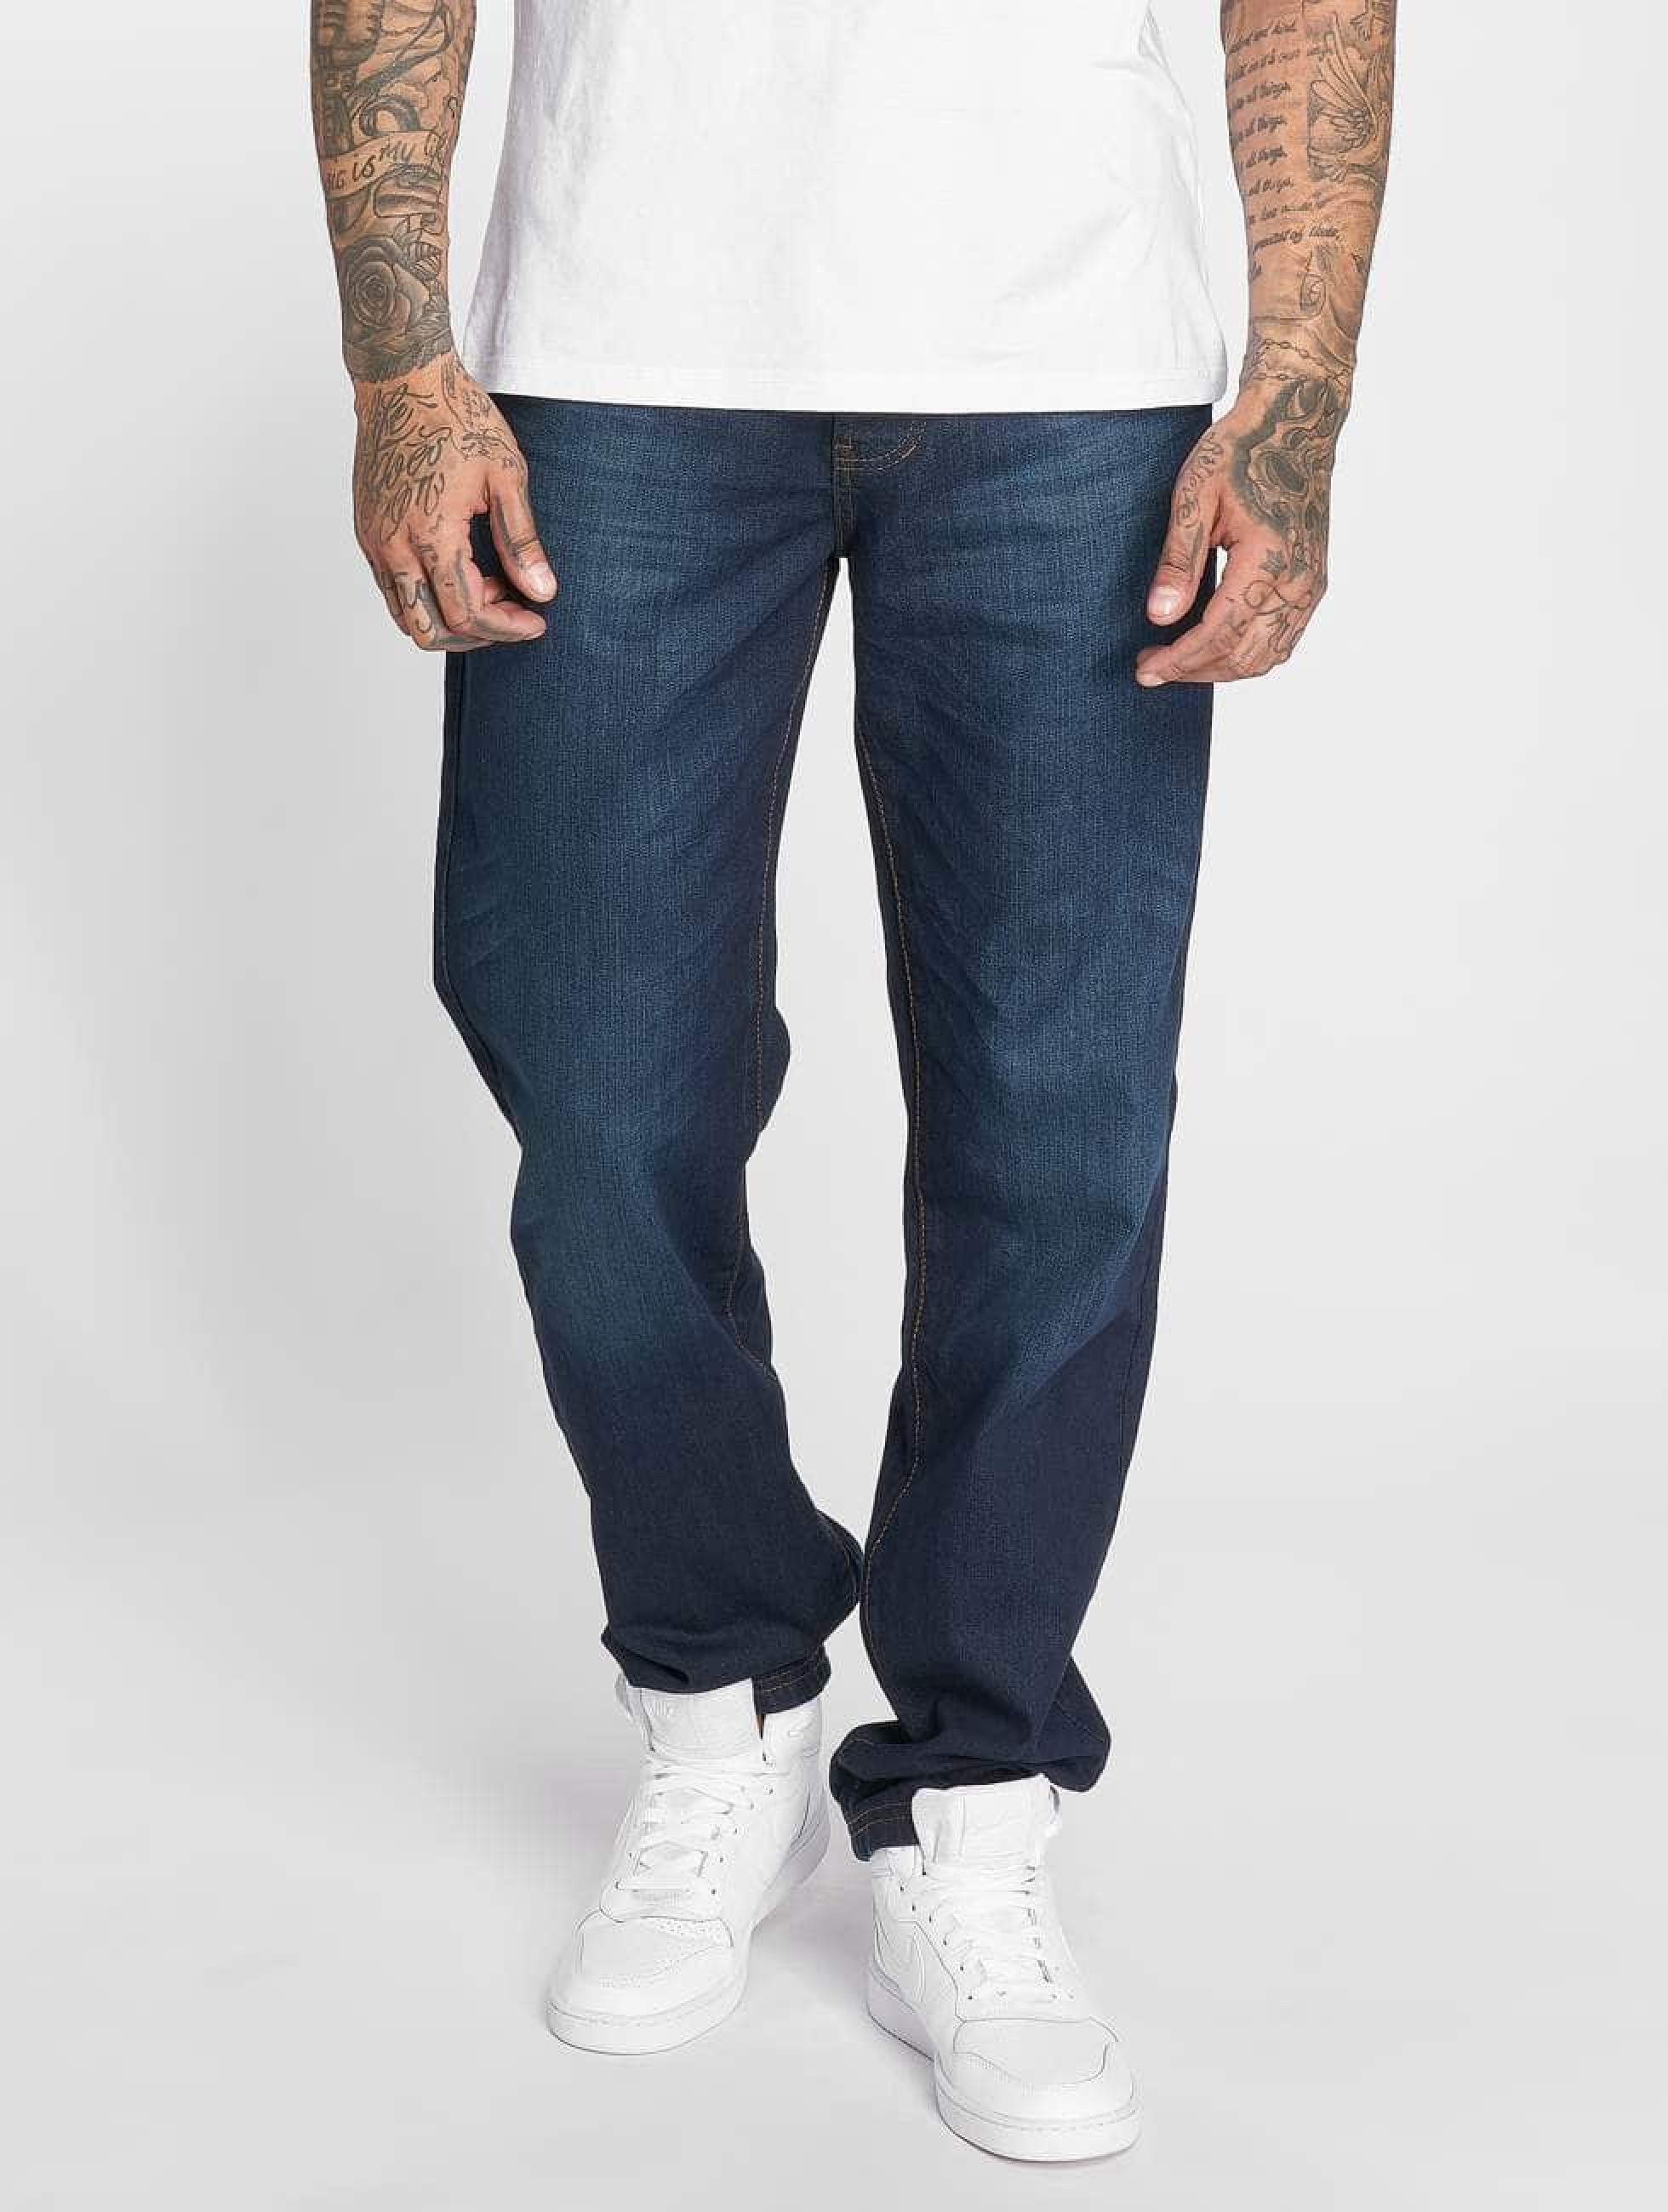 Thug Life / Carrot Fit Jeans B . Denim in blue W 40 L 34